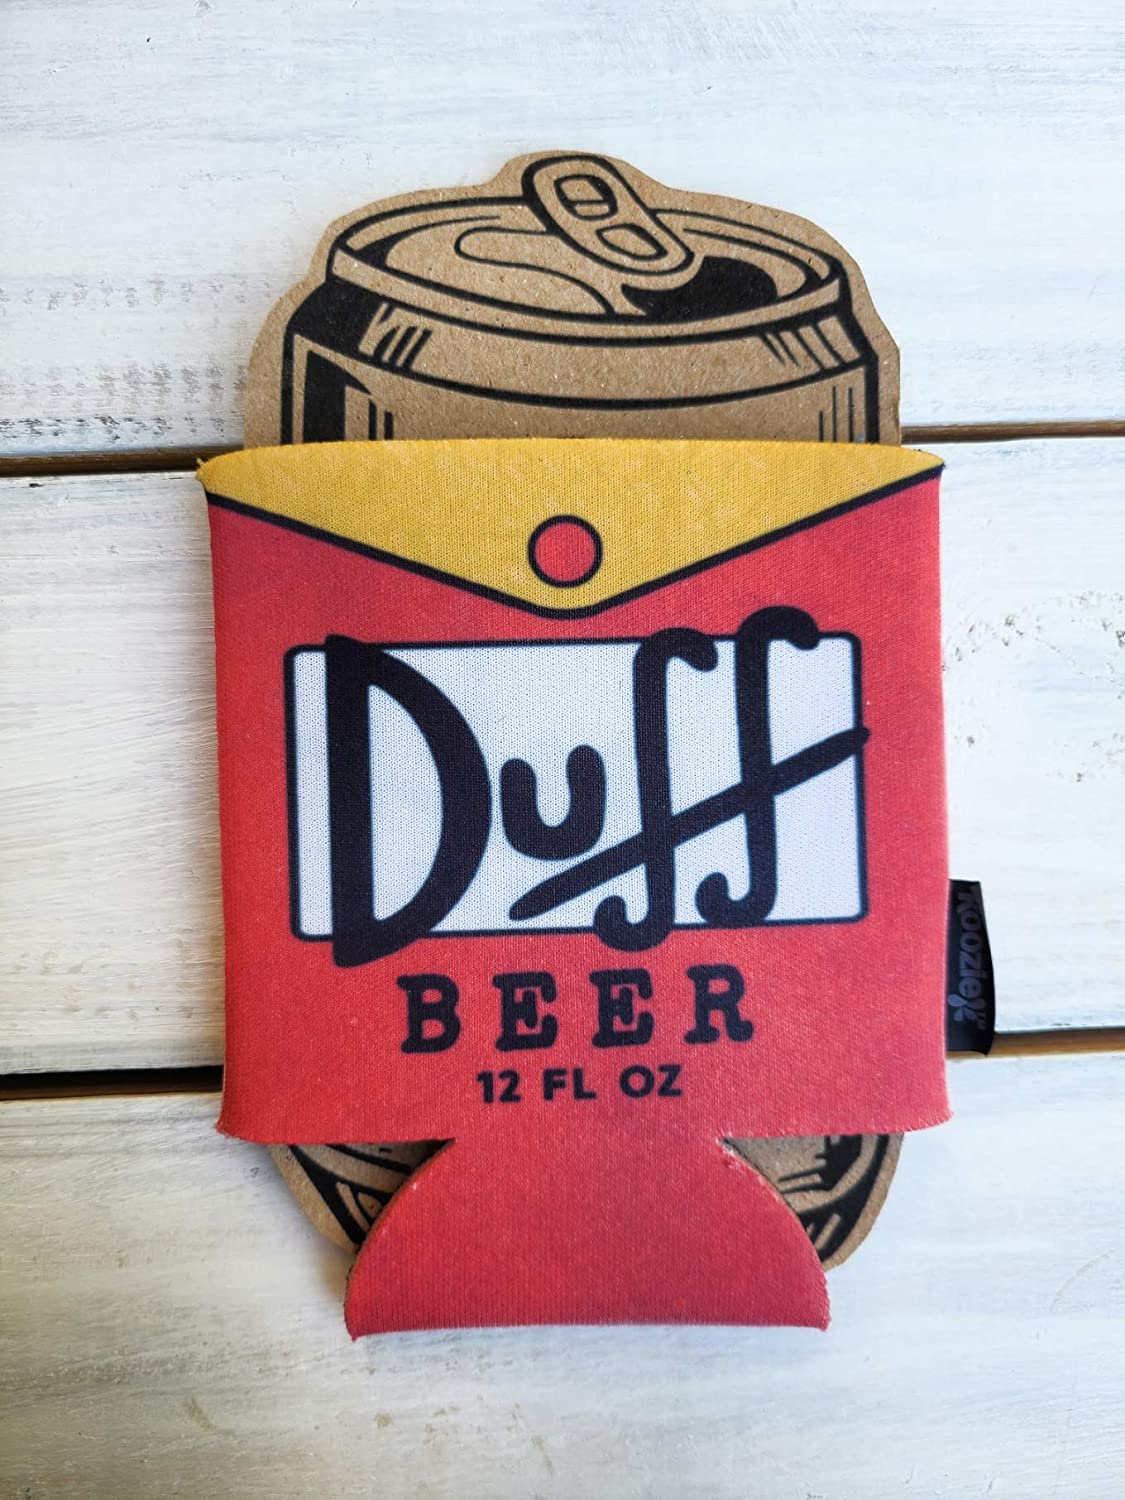 Duff Beer Homer Simpson Hilarious Max 68% OFF Topics on TV Cooler Coozie Par Football Can